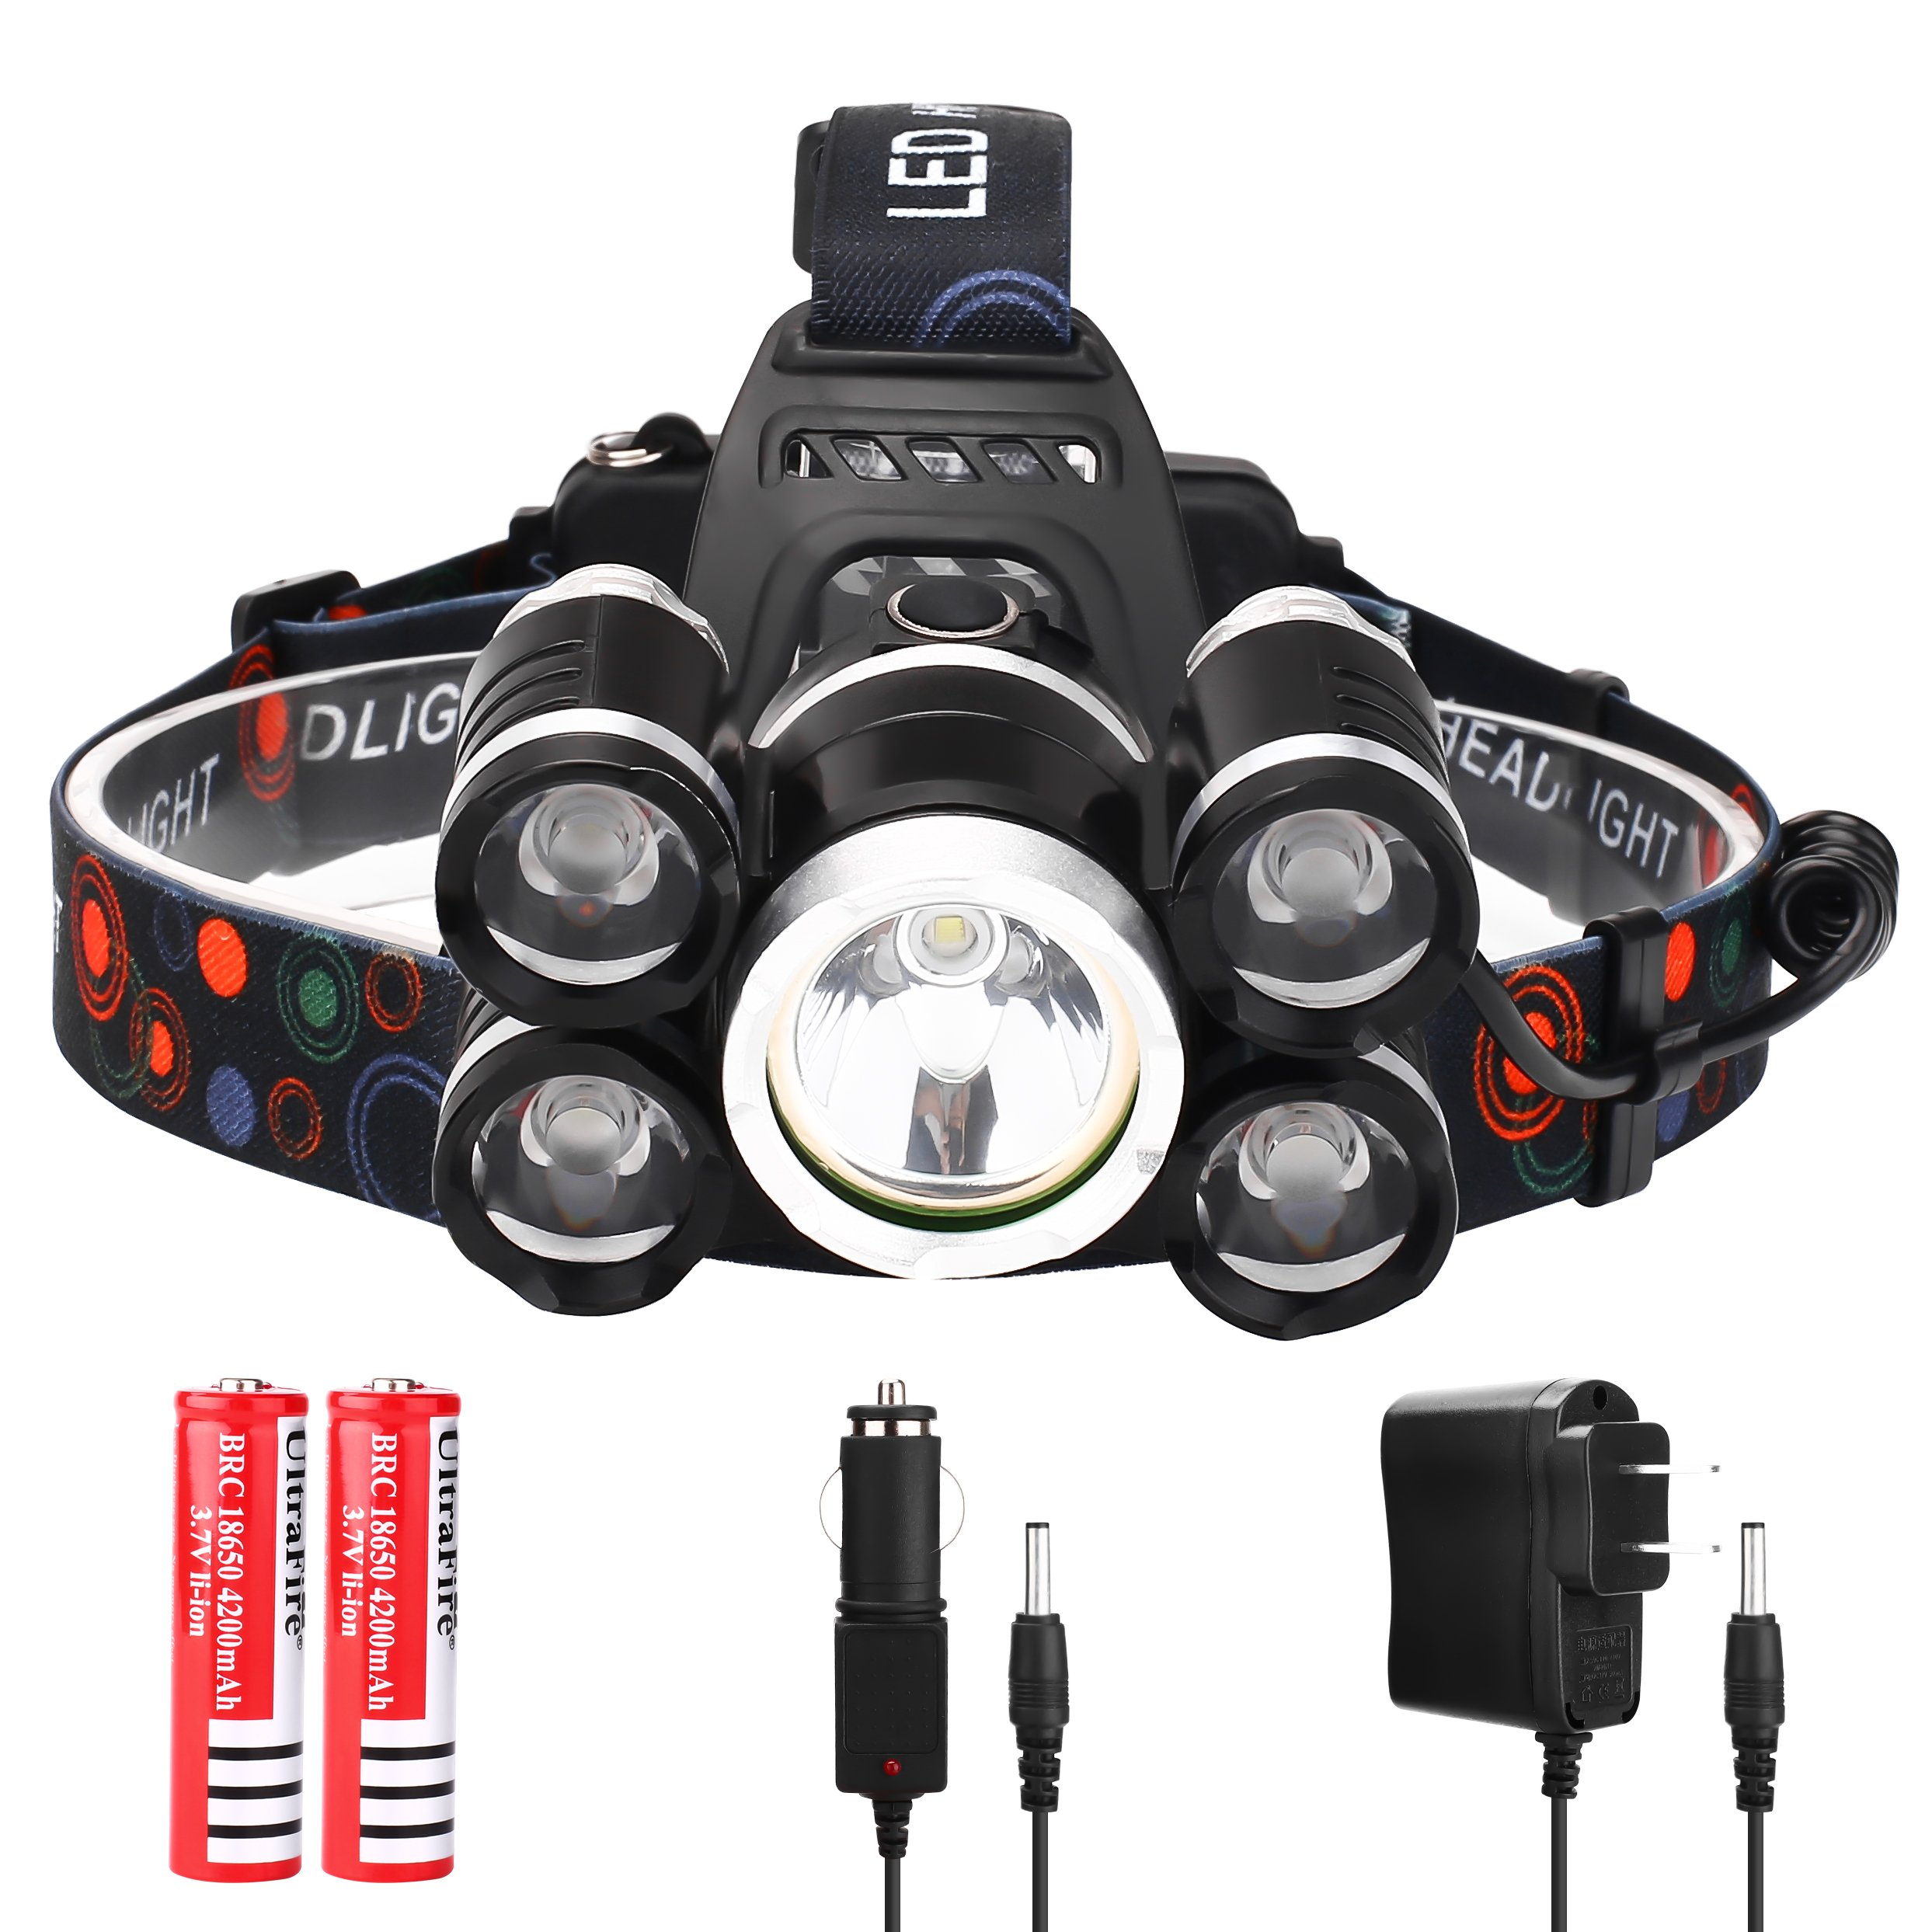 Brightest T6+4Q5 Rechargeable LED Headlamp, Improved Waterproof Headlight Flashlights with Original 18650 Battery,Camping, Fishing Outdoor Night Head Light